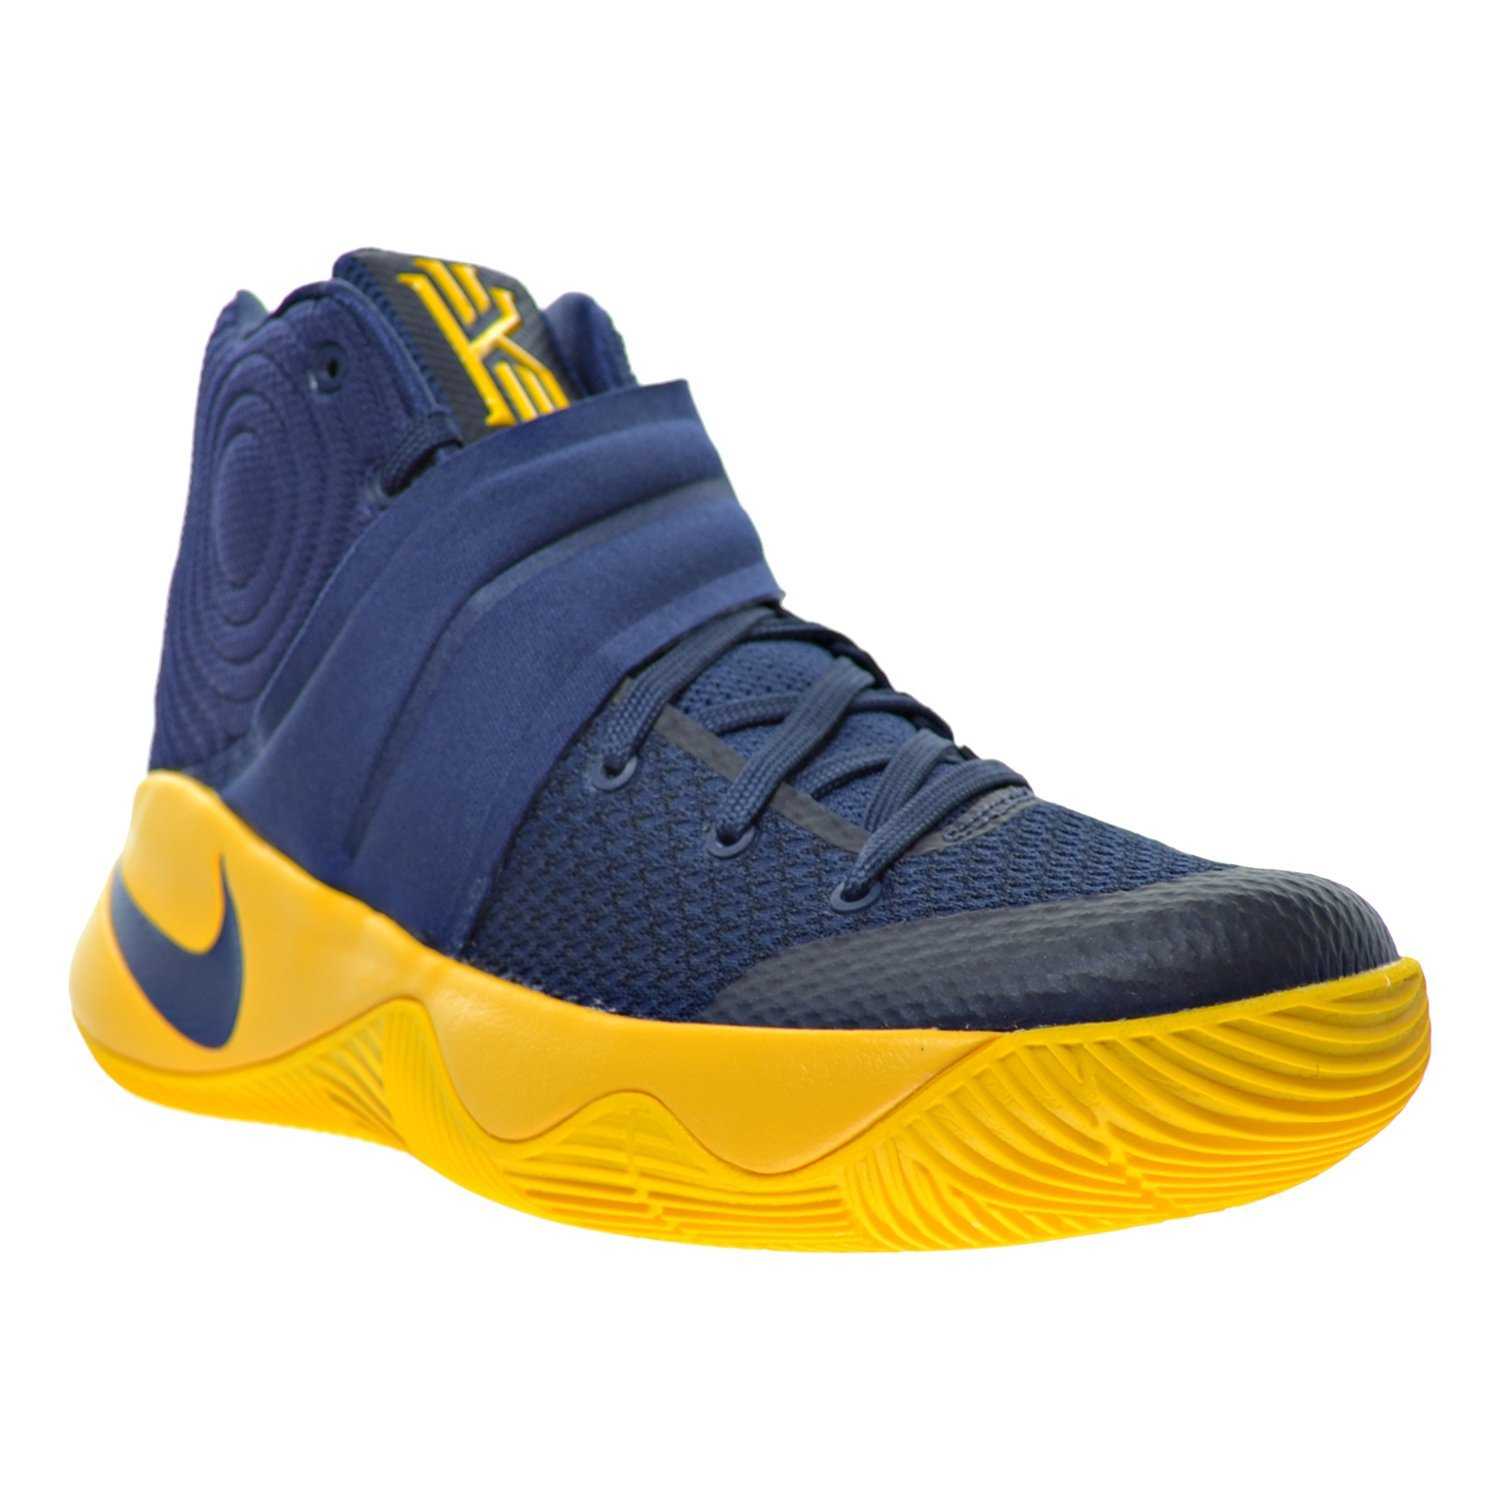 release date 7bde7 f3b61 best price amazon nike kyrie 2 mens shoes midnight navy university gold  university red 819583 447